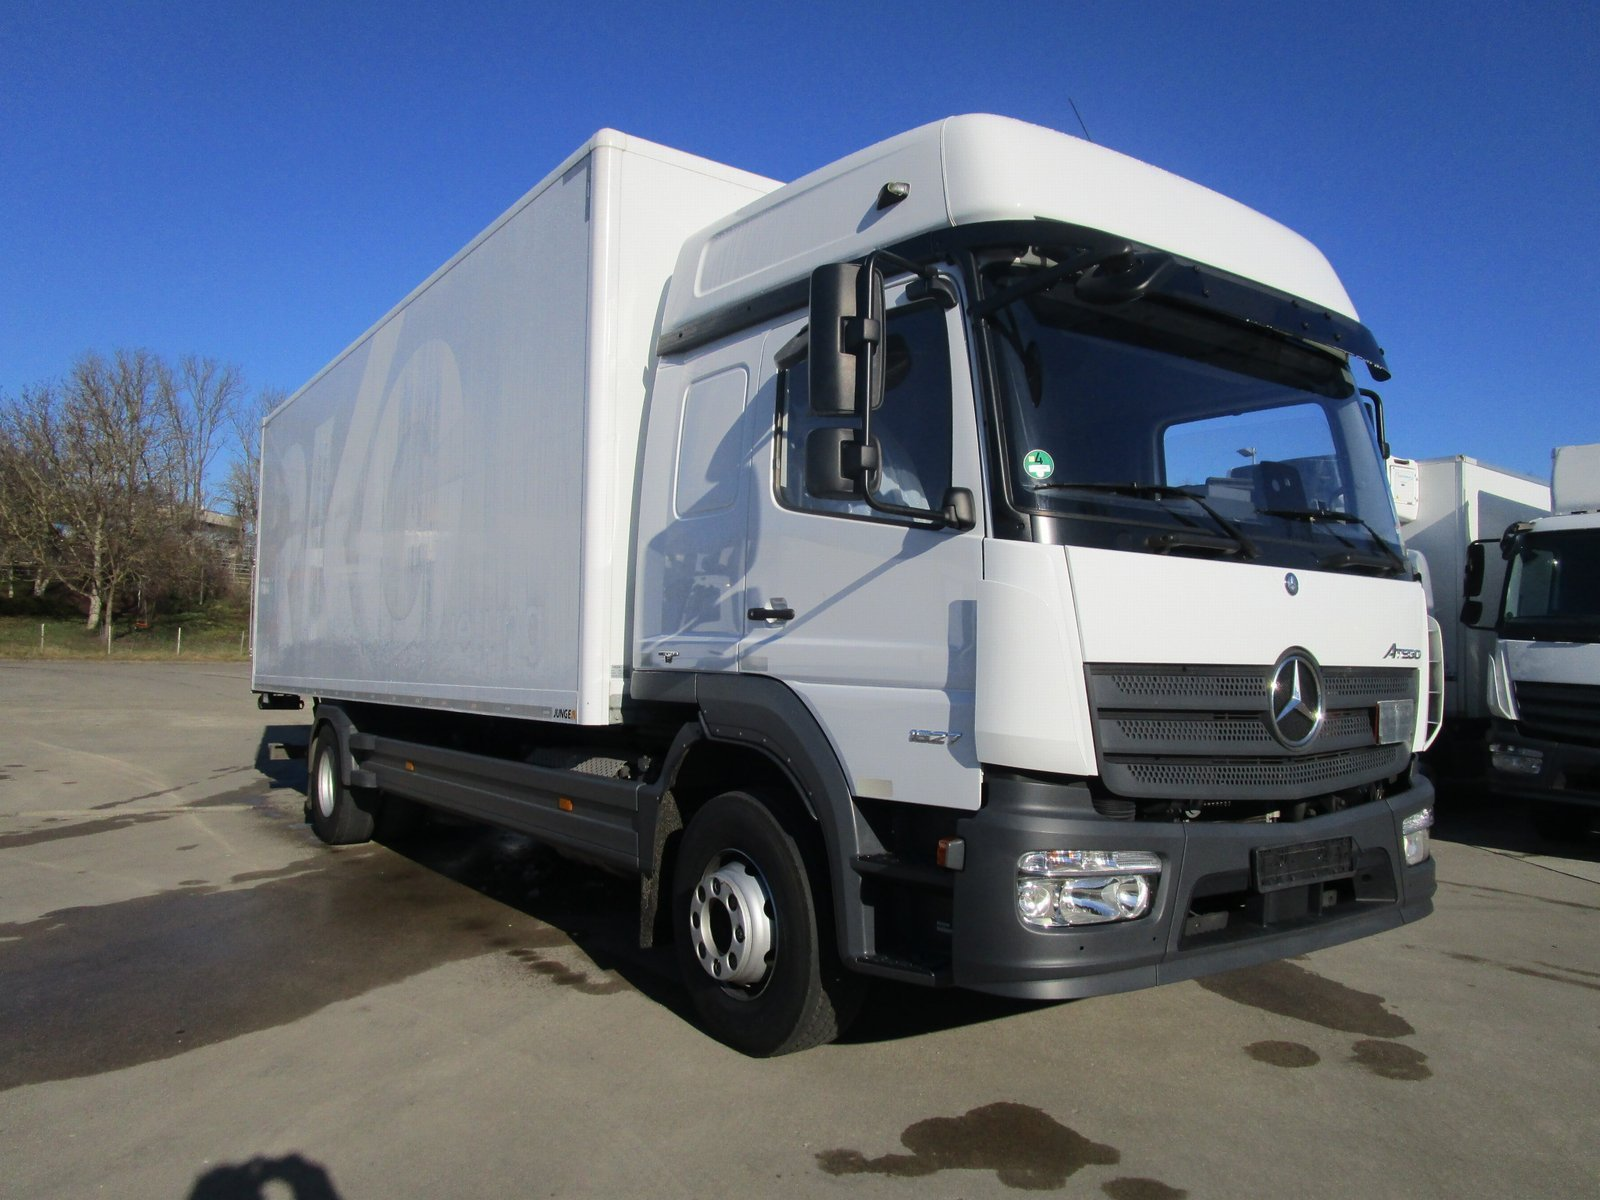 ATEGO 1527 L BIGSPACE Koffer 7,20 m LBW 1,5 TO.